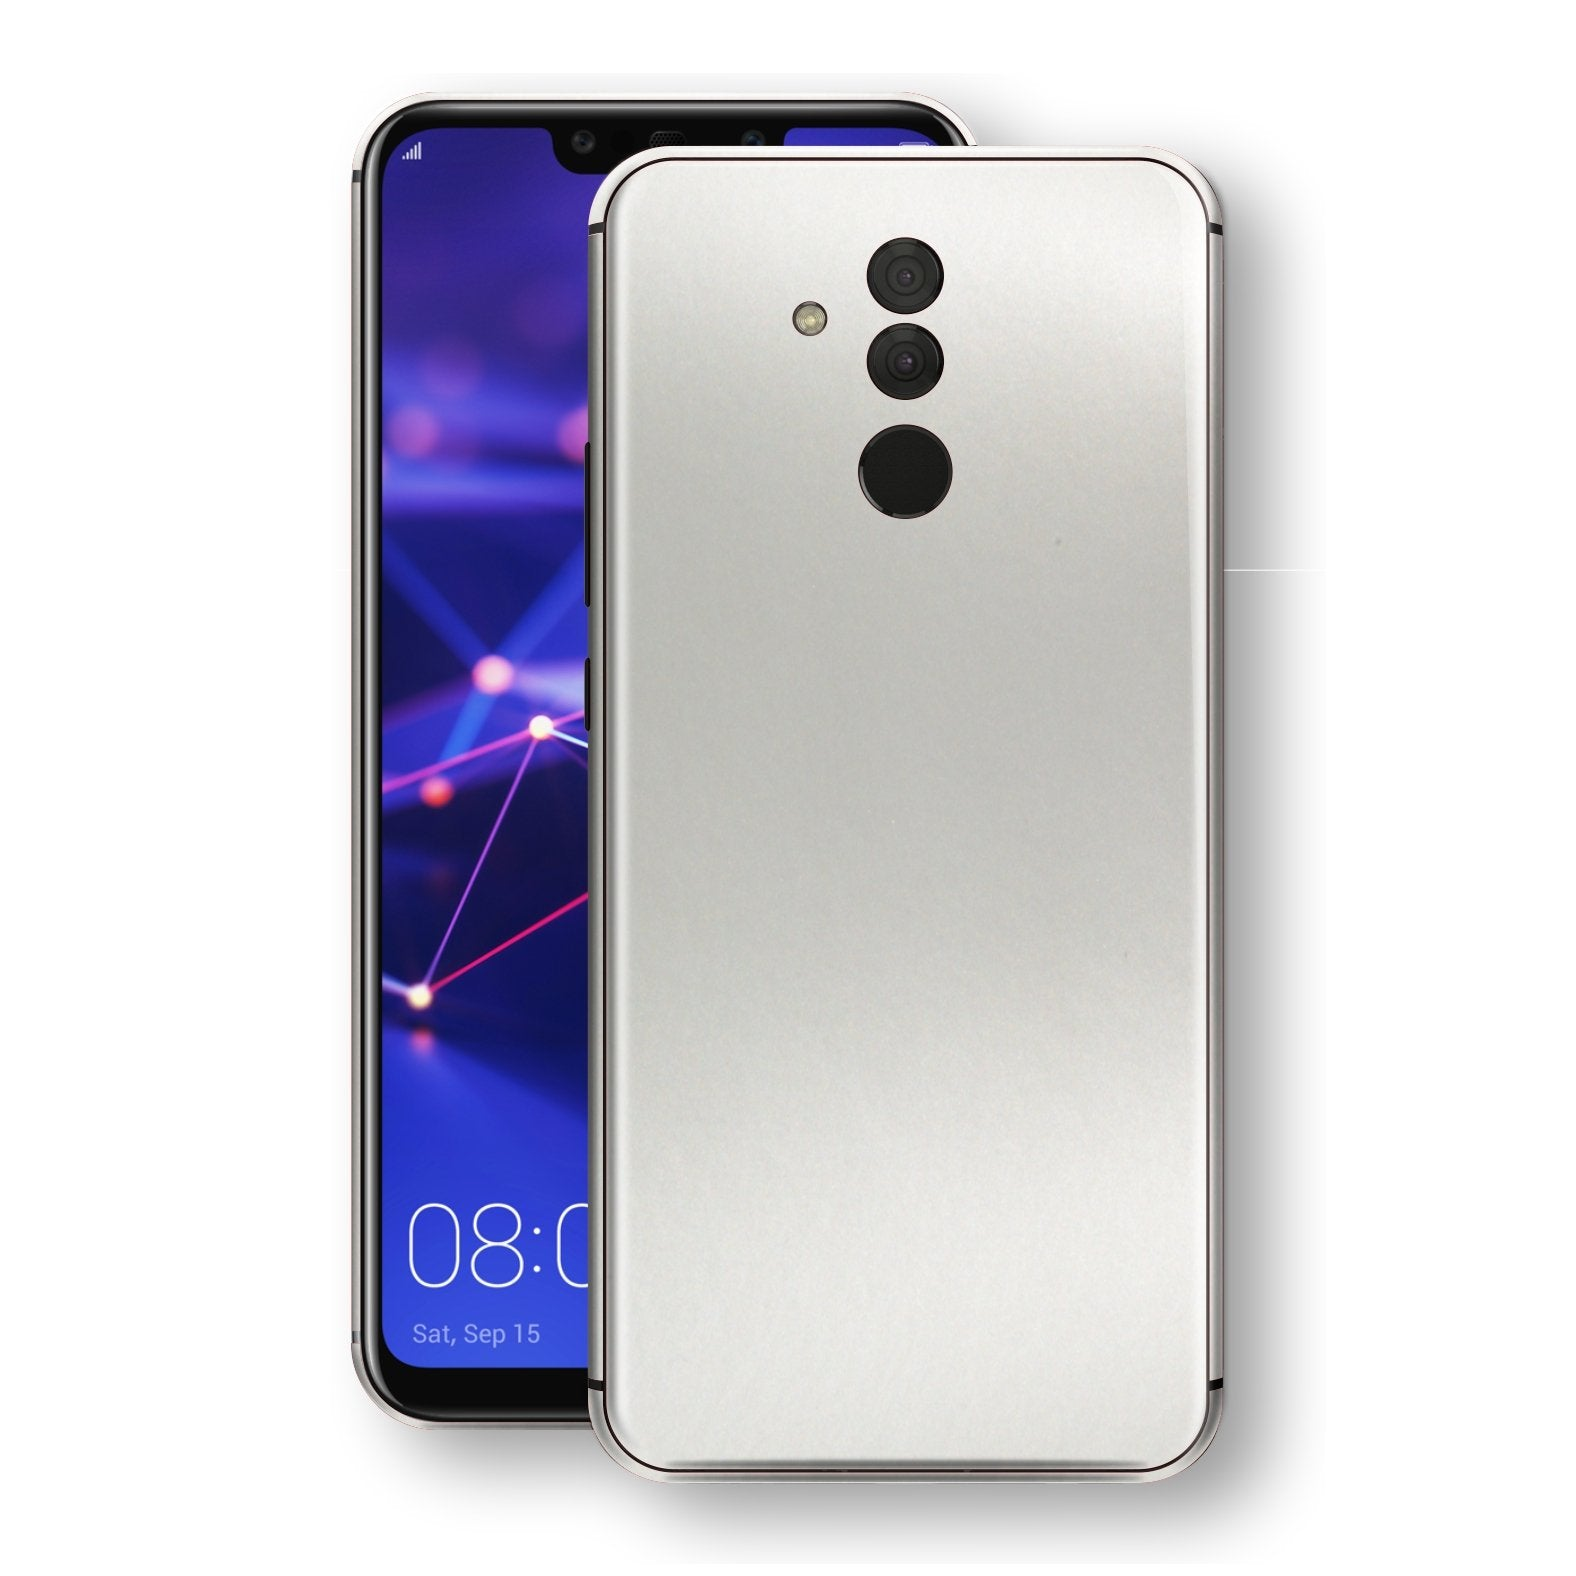 Huawei MATE 20 LITE Satin Pearl White Matt Skin, Decal, Wrap, Protector, Cover by EasySkinz | EasySkinz.com